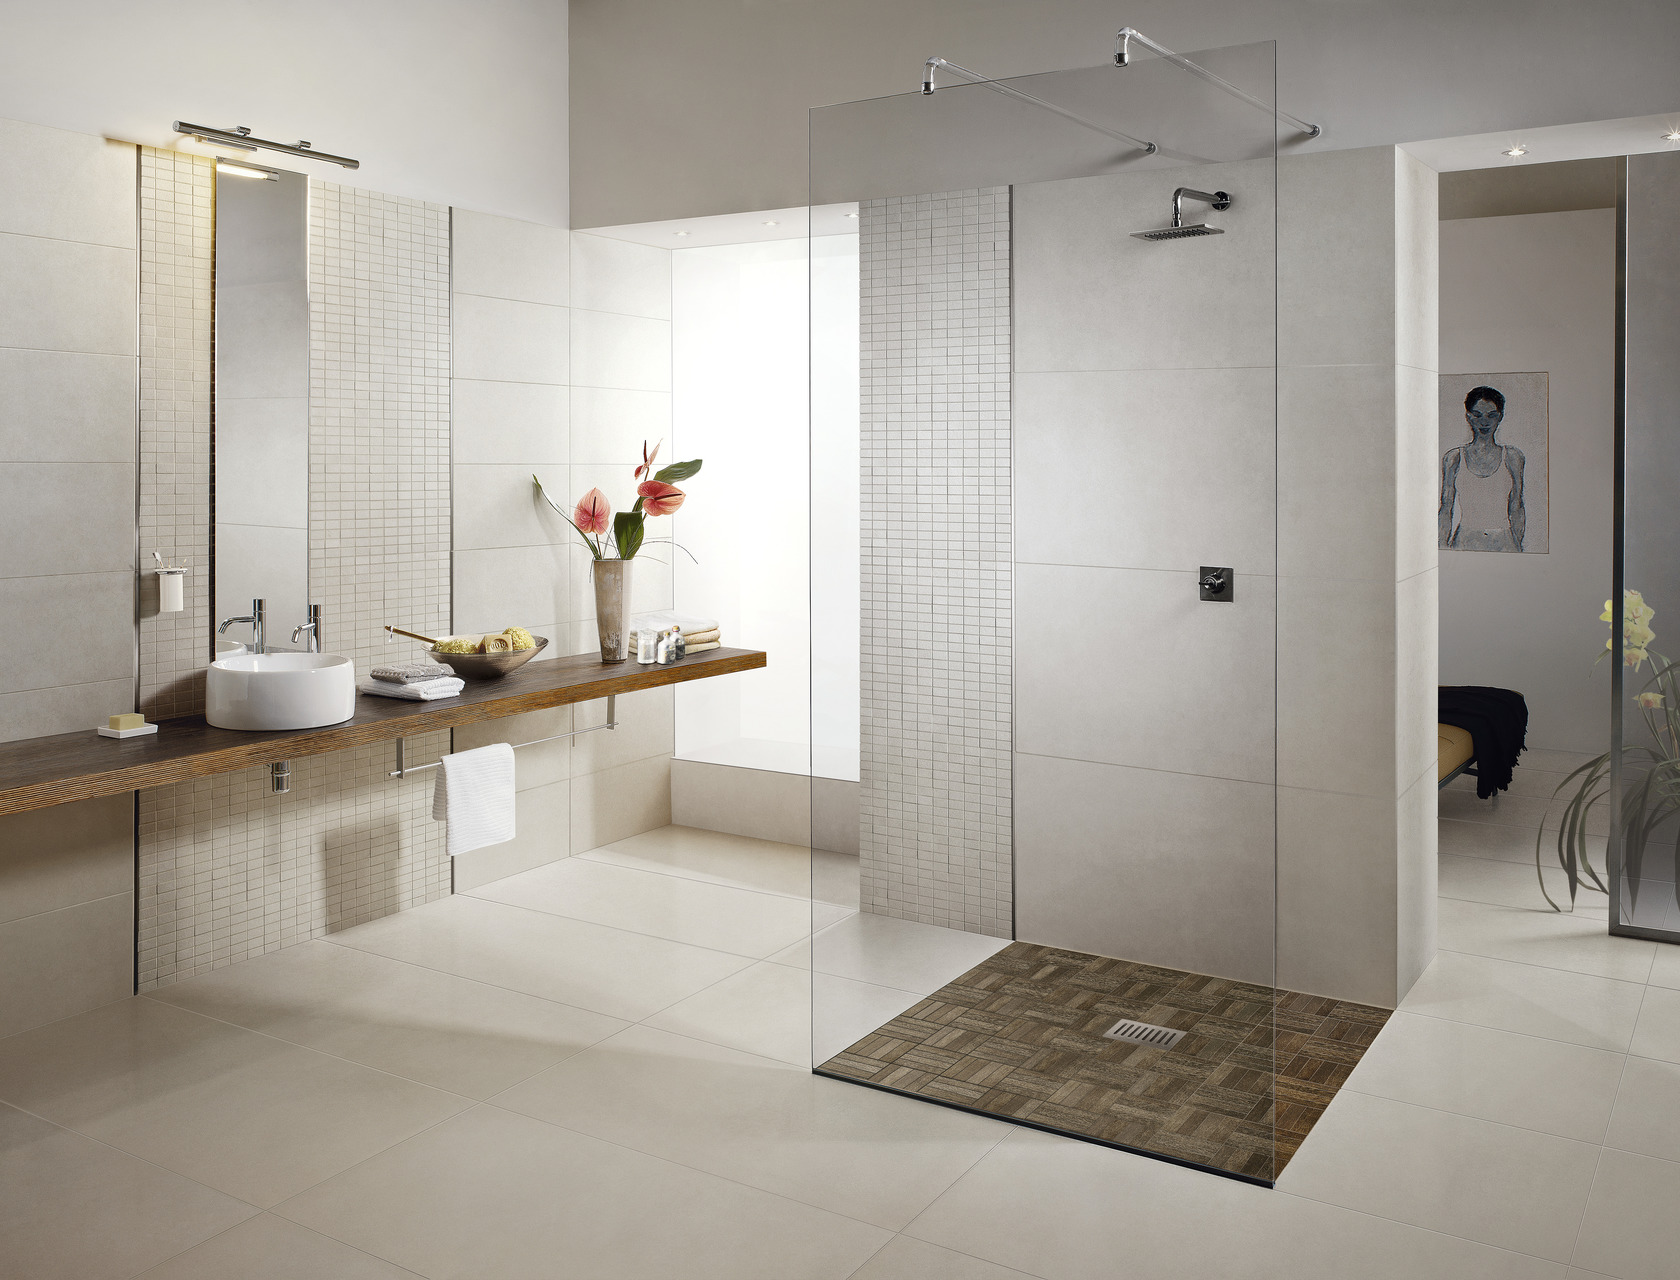 Limra | white stone effect tiles for indoor and outdoor